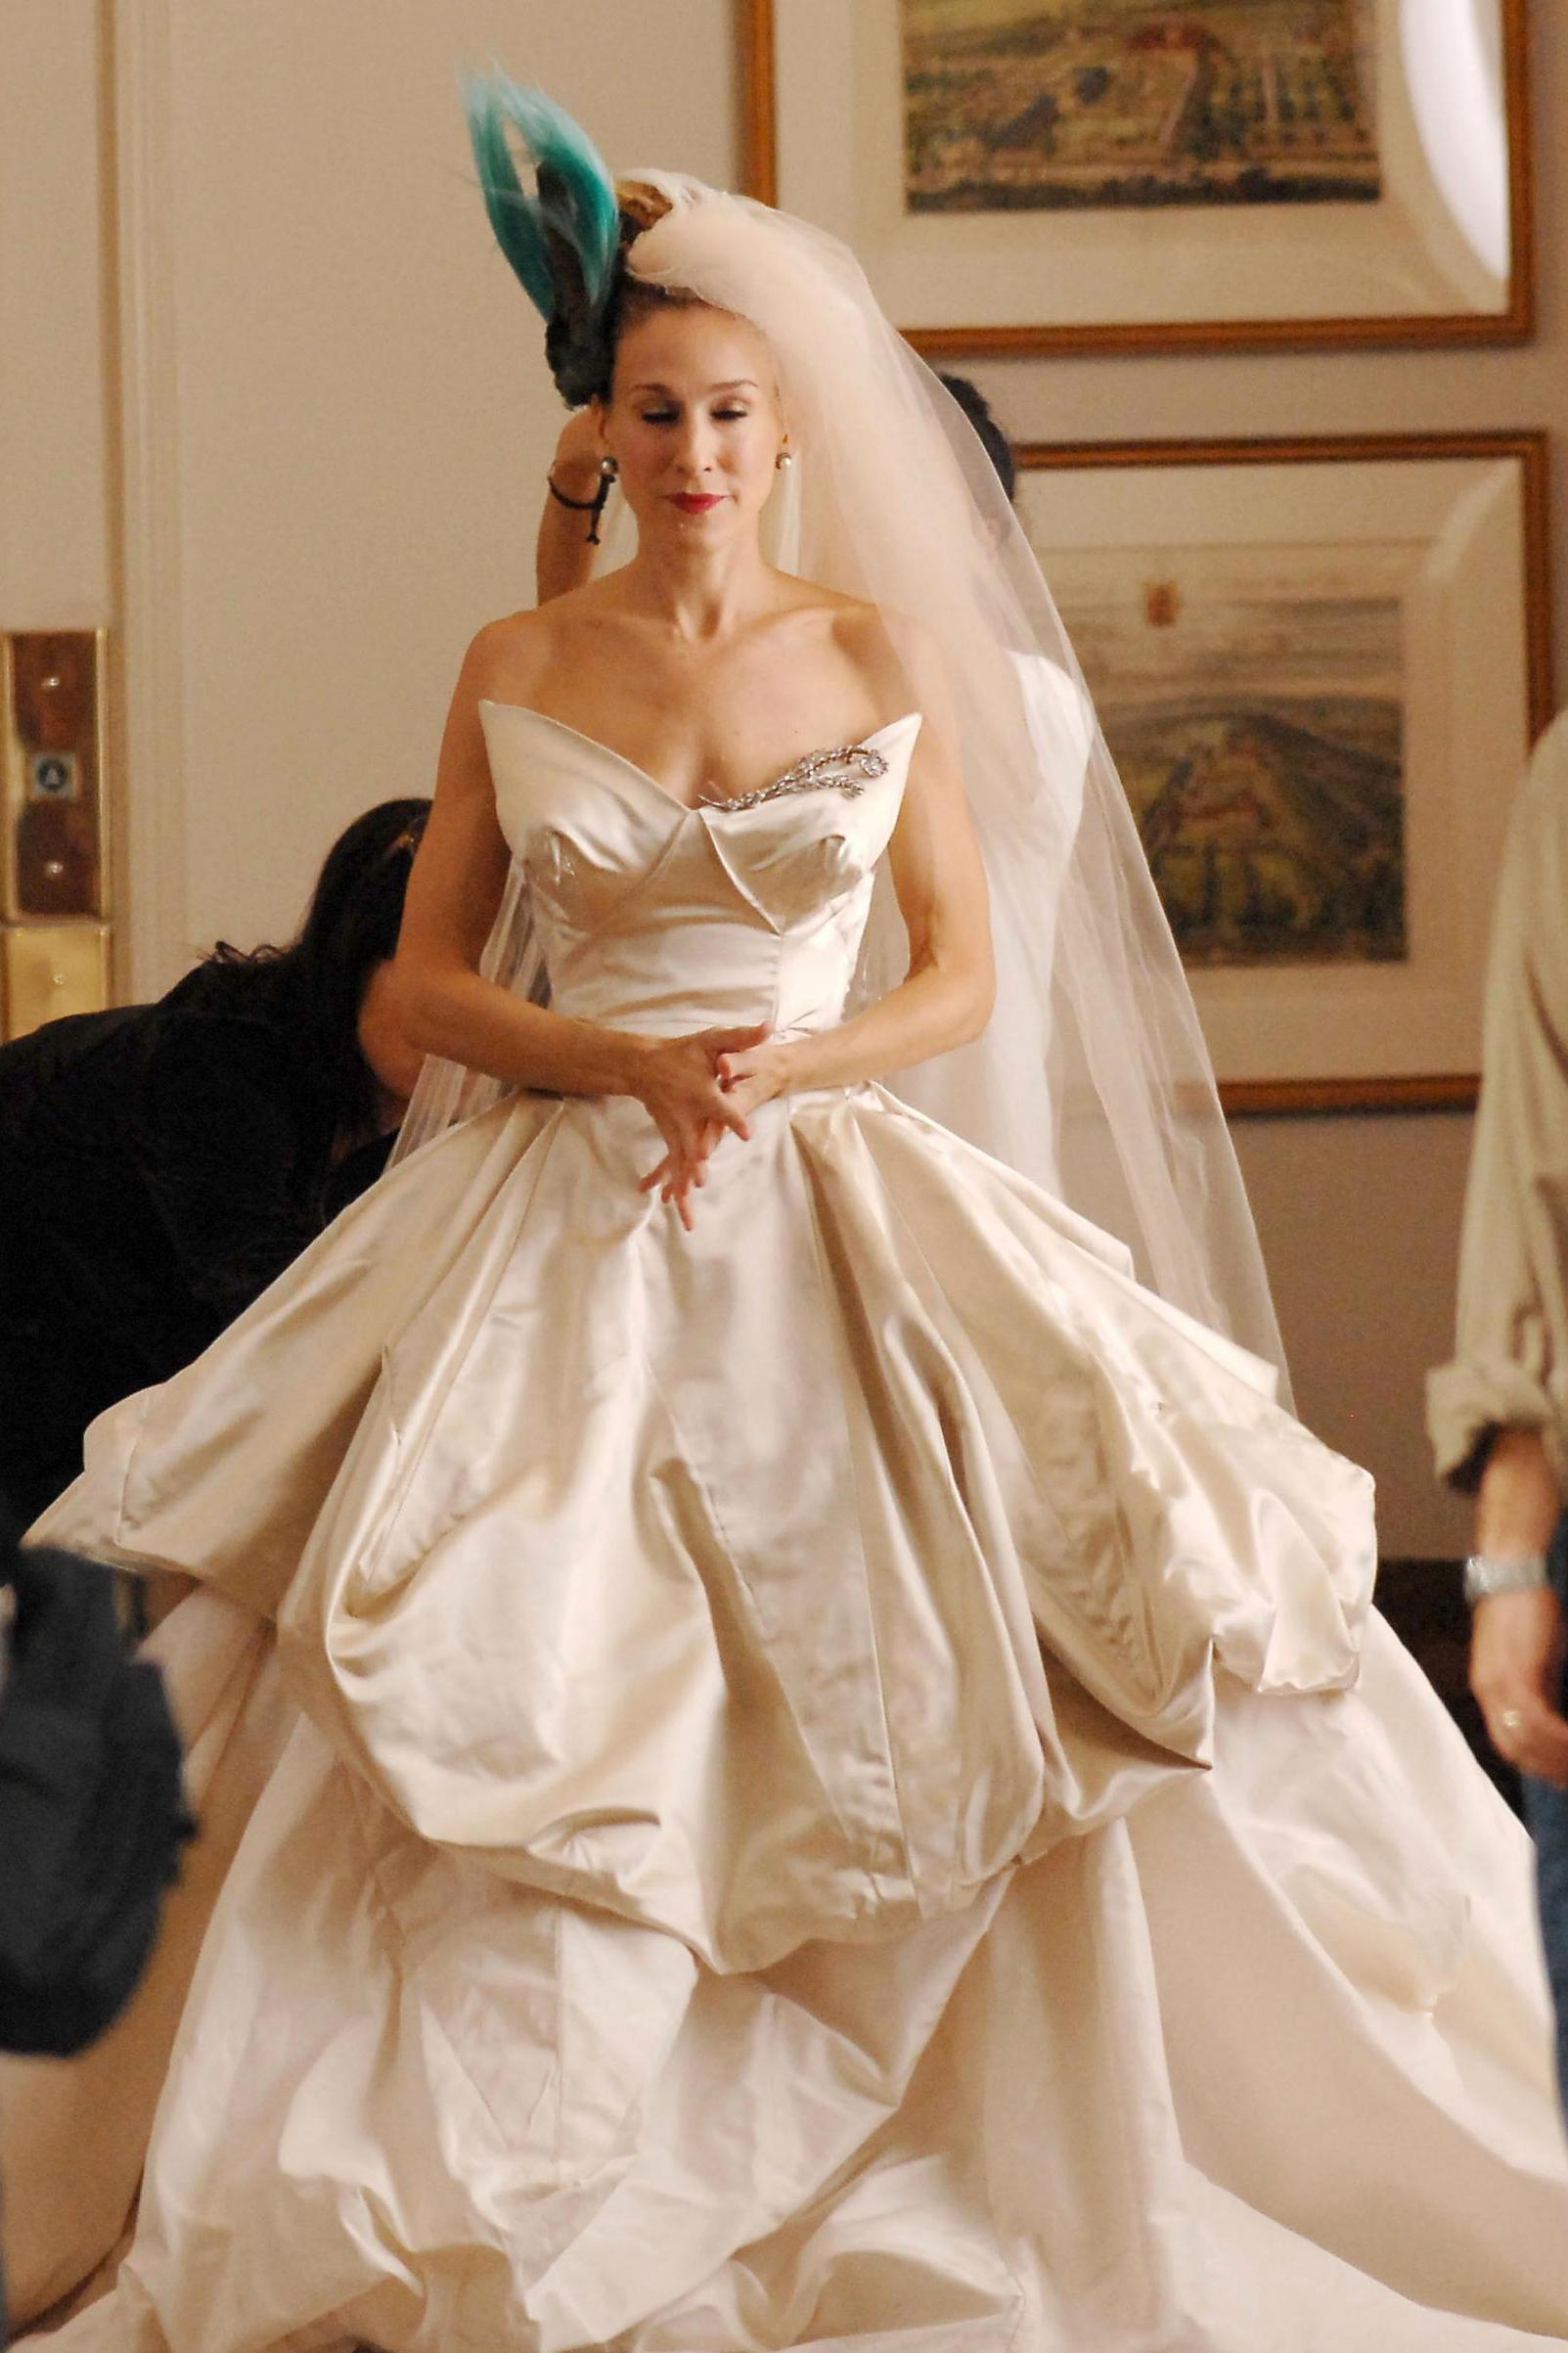 Miley Cyrus Wedding Dress.Miley Cyrus Marries Liam Hemsworth In Beautiful Vivienne Westwood